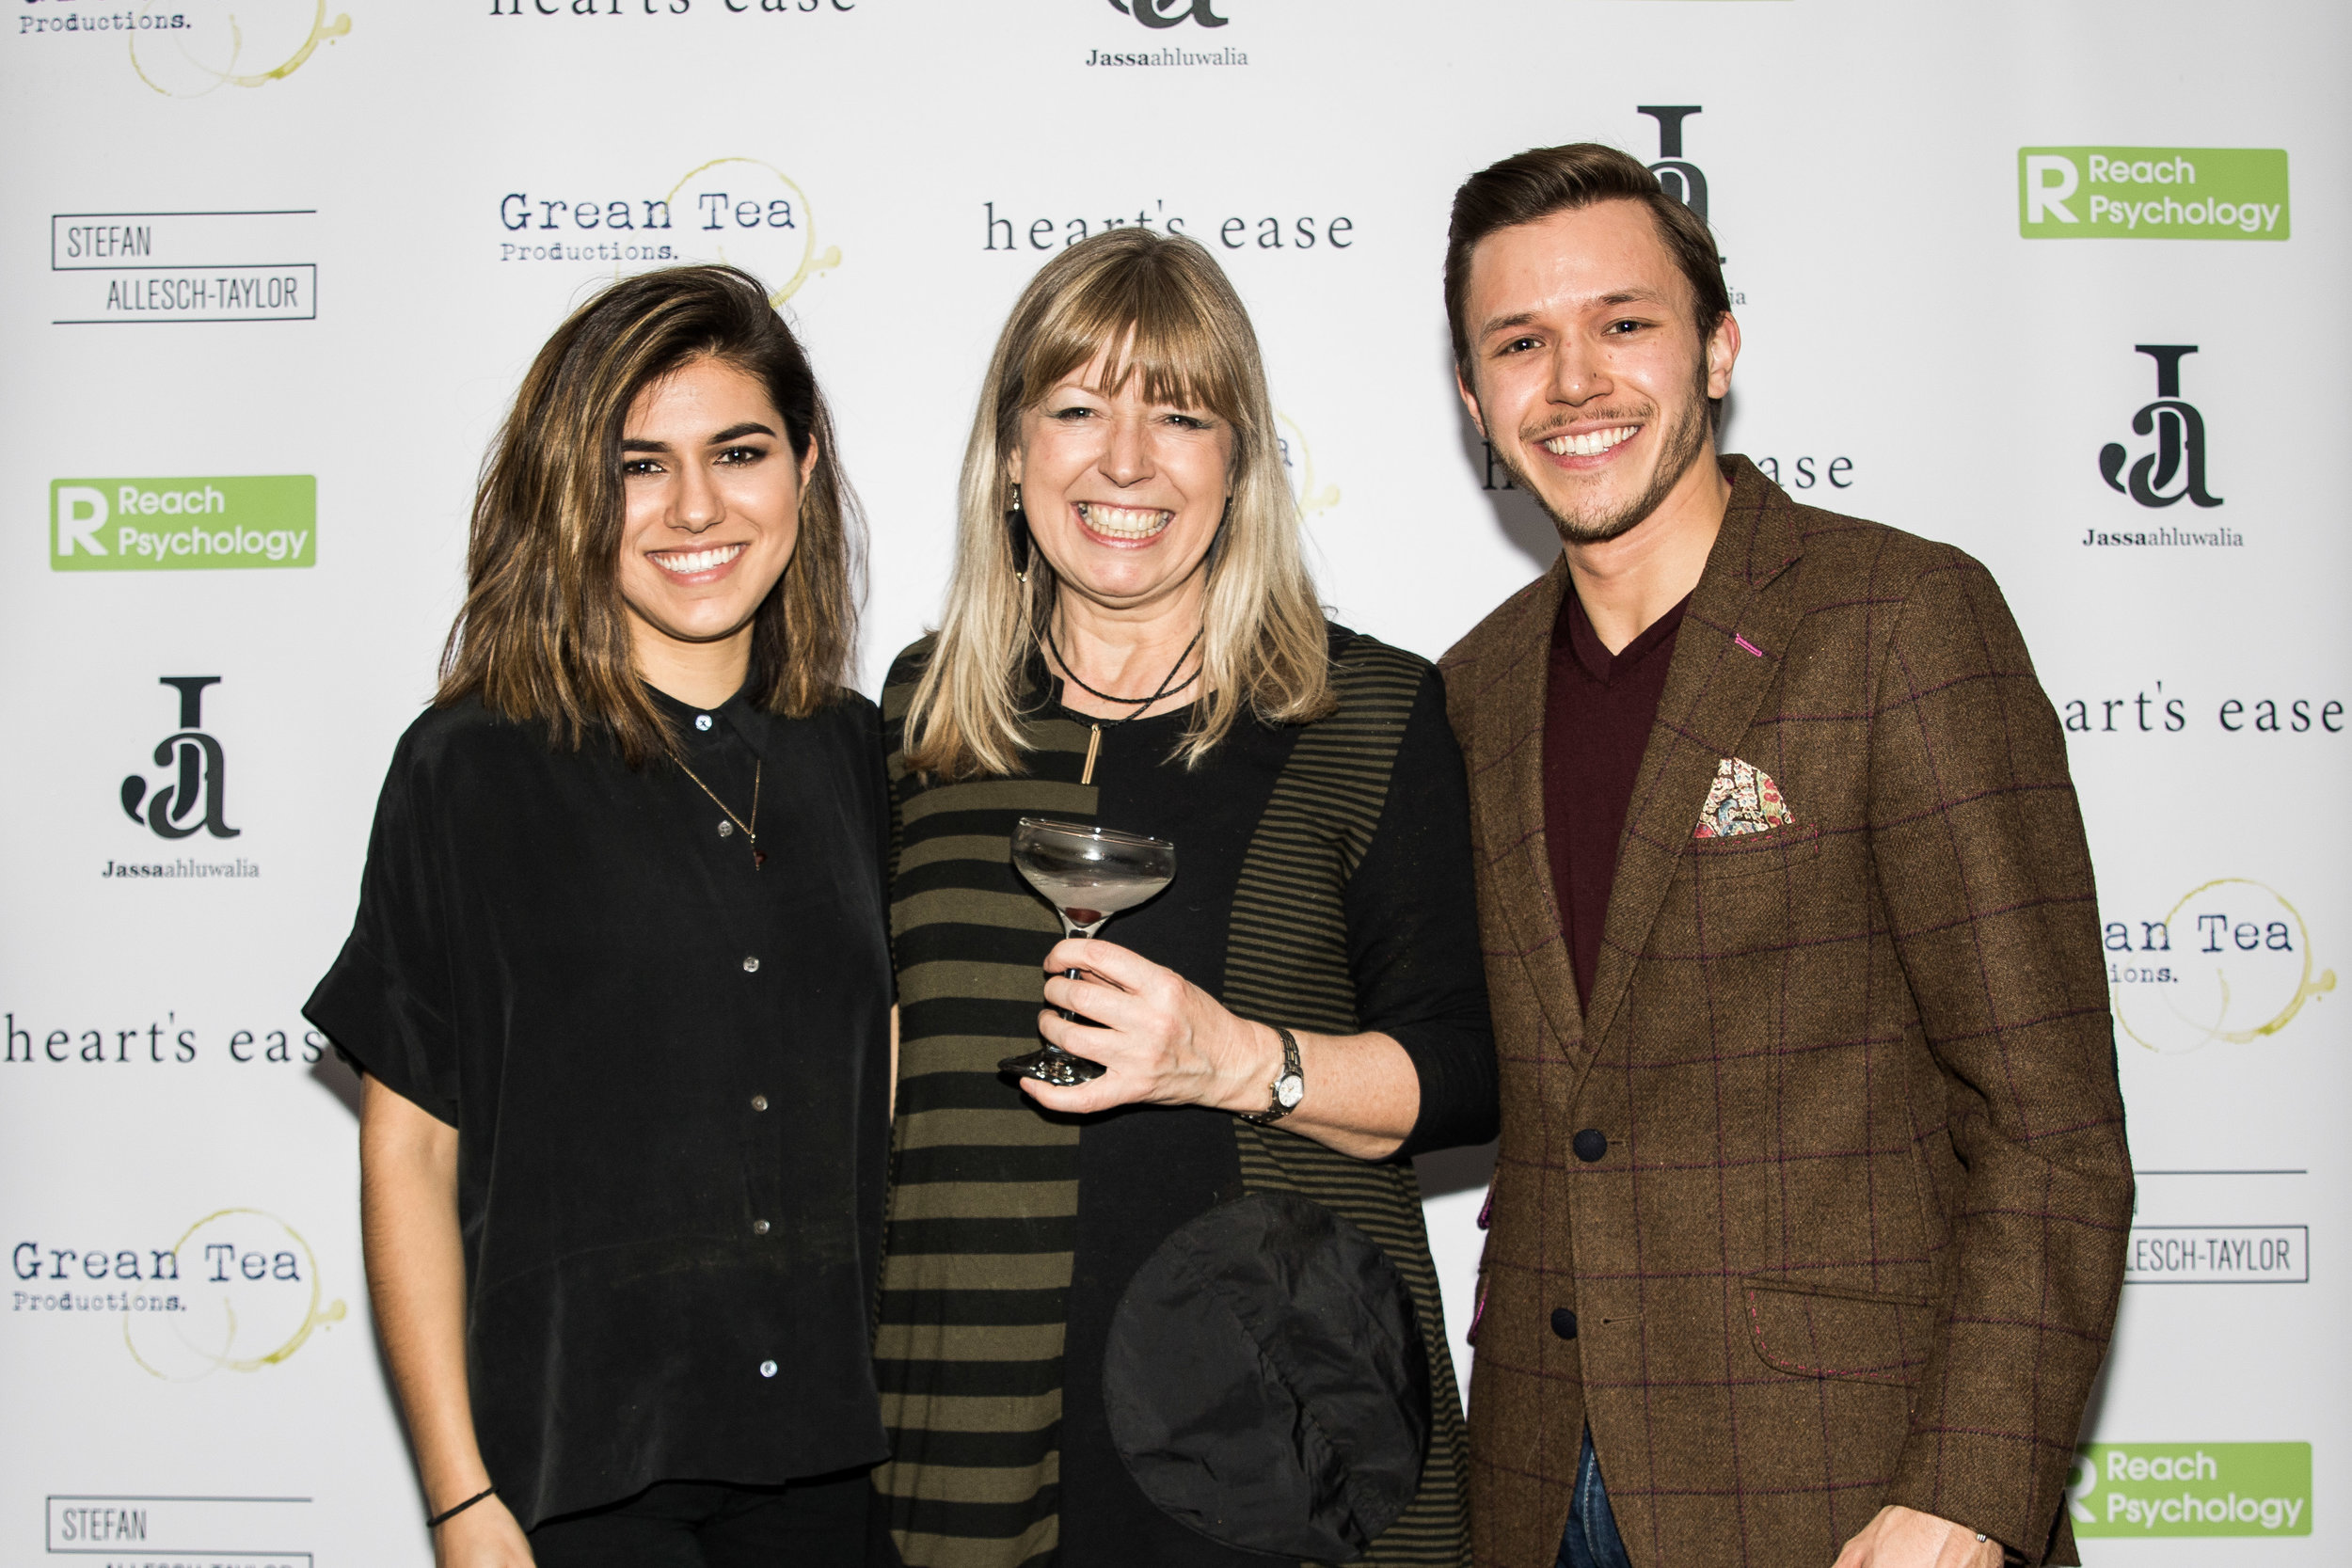 Ramanique, Sarah and Jassa Ahluwalia attend the cast and crew screening of Heart's Ease.